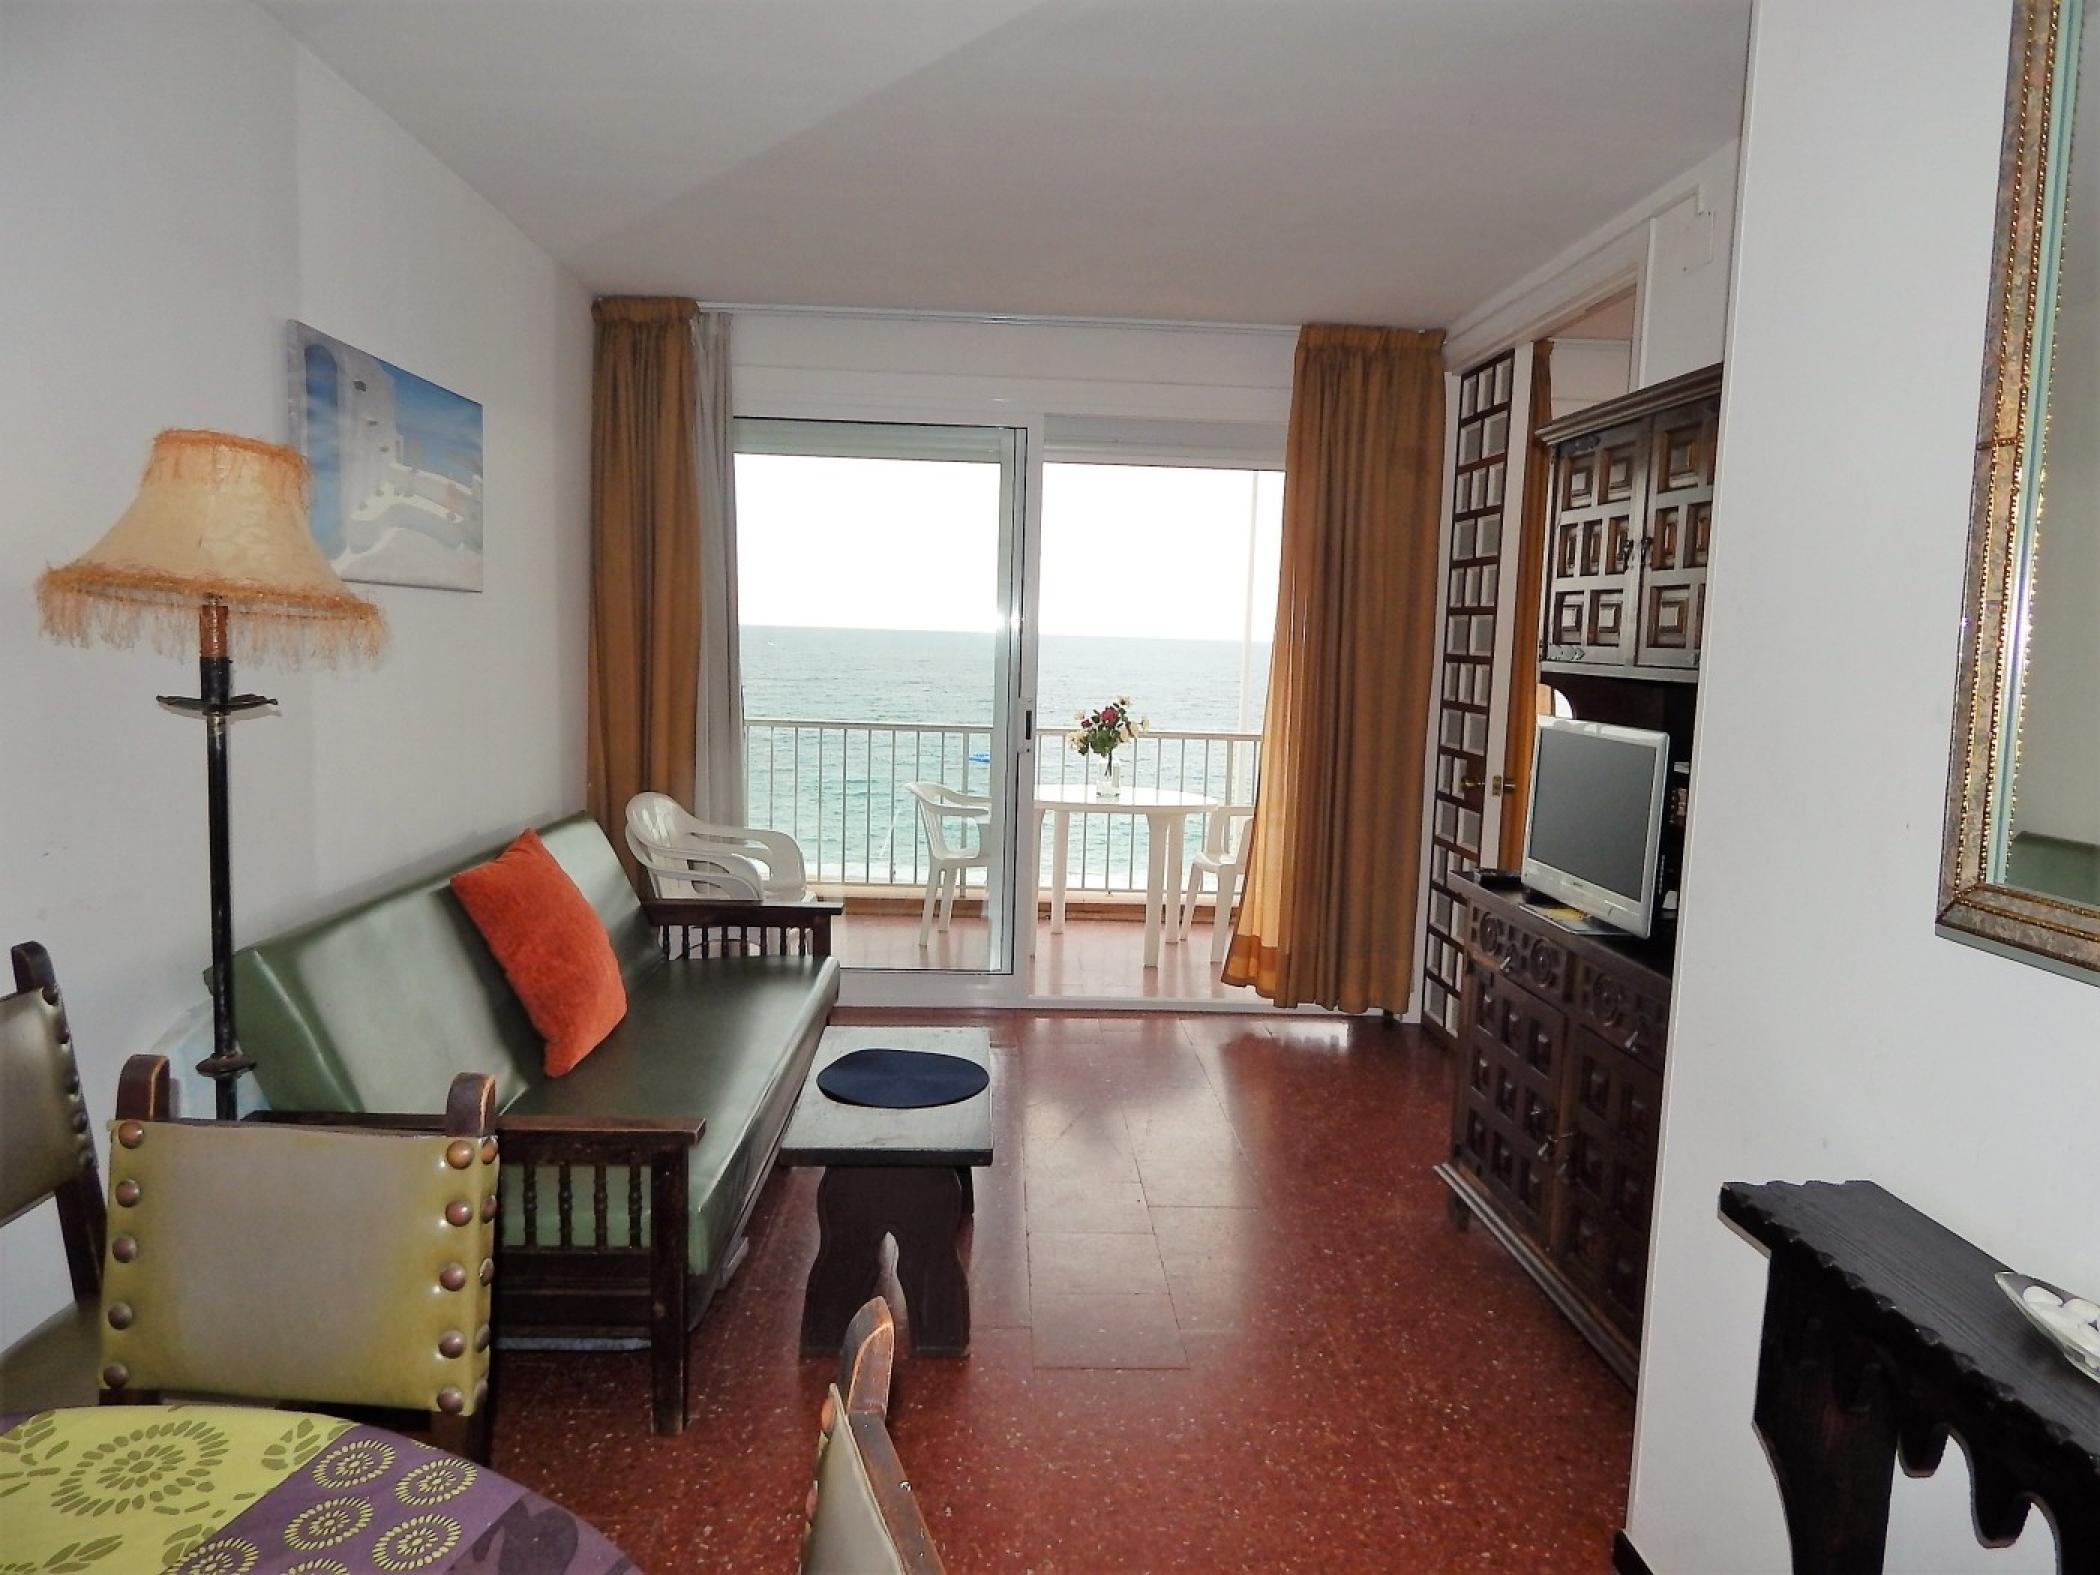 аренда квартира для Platja d'Aro - Girorooms Platja d'Aro Alexandra B Sea Views - 4